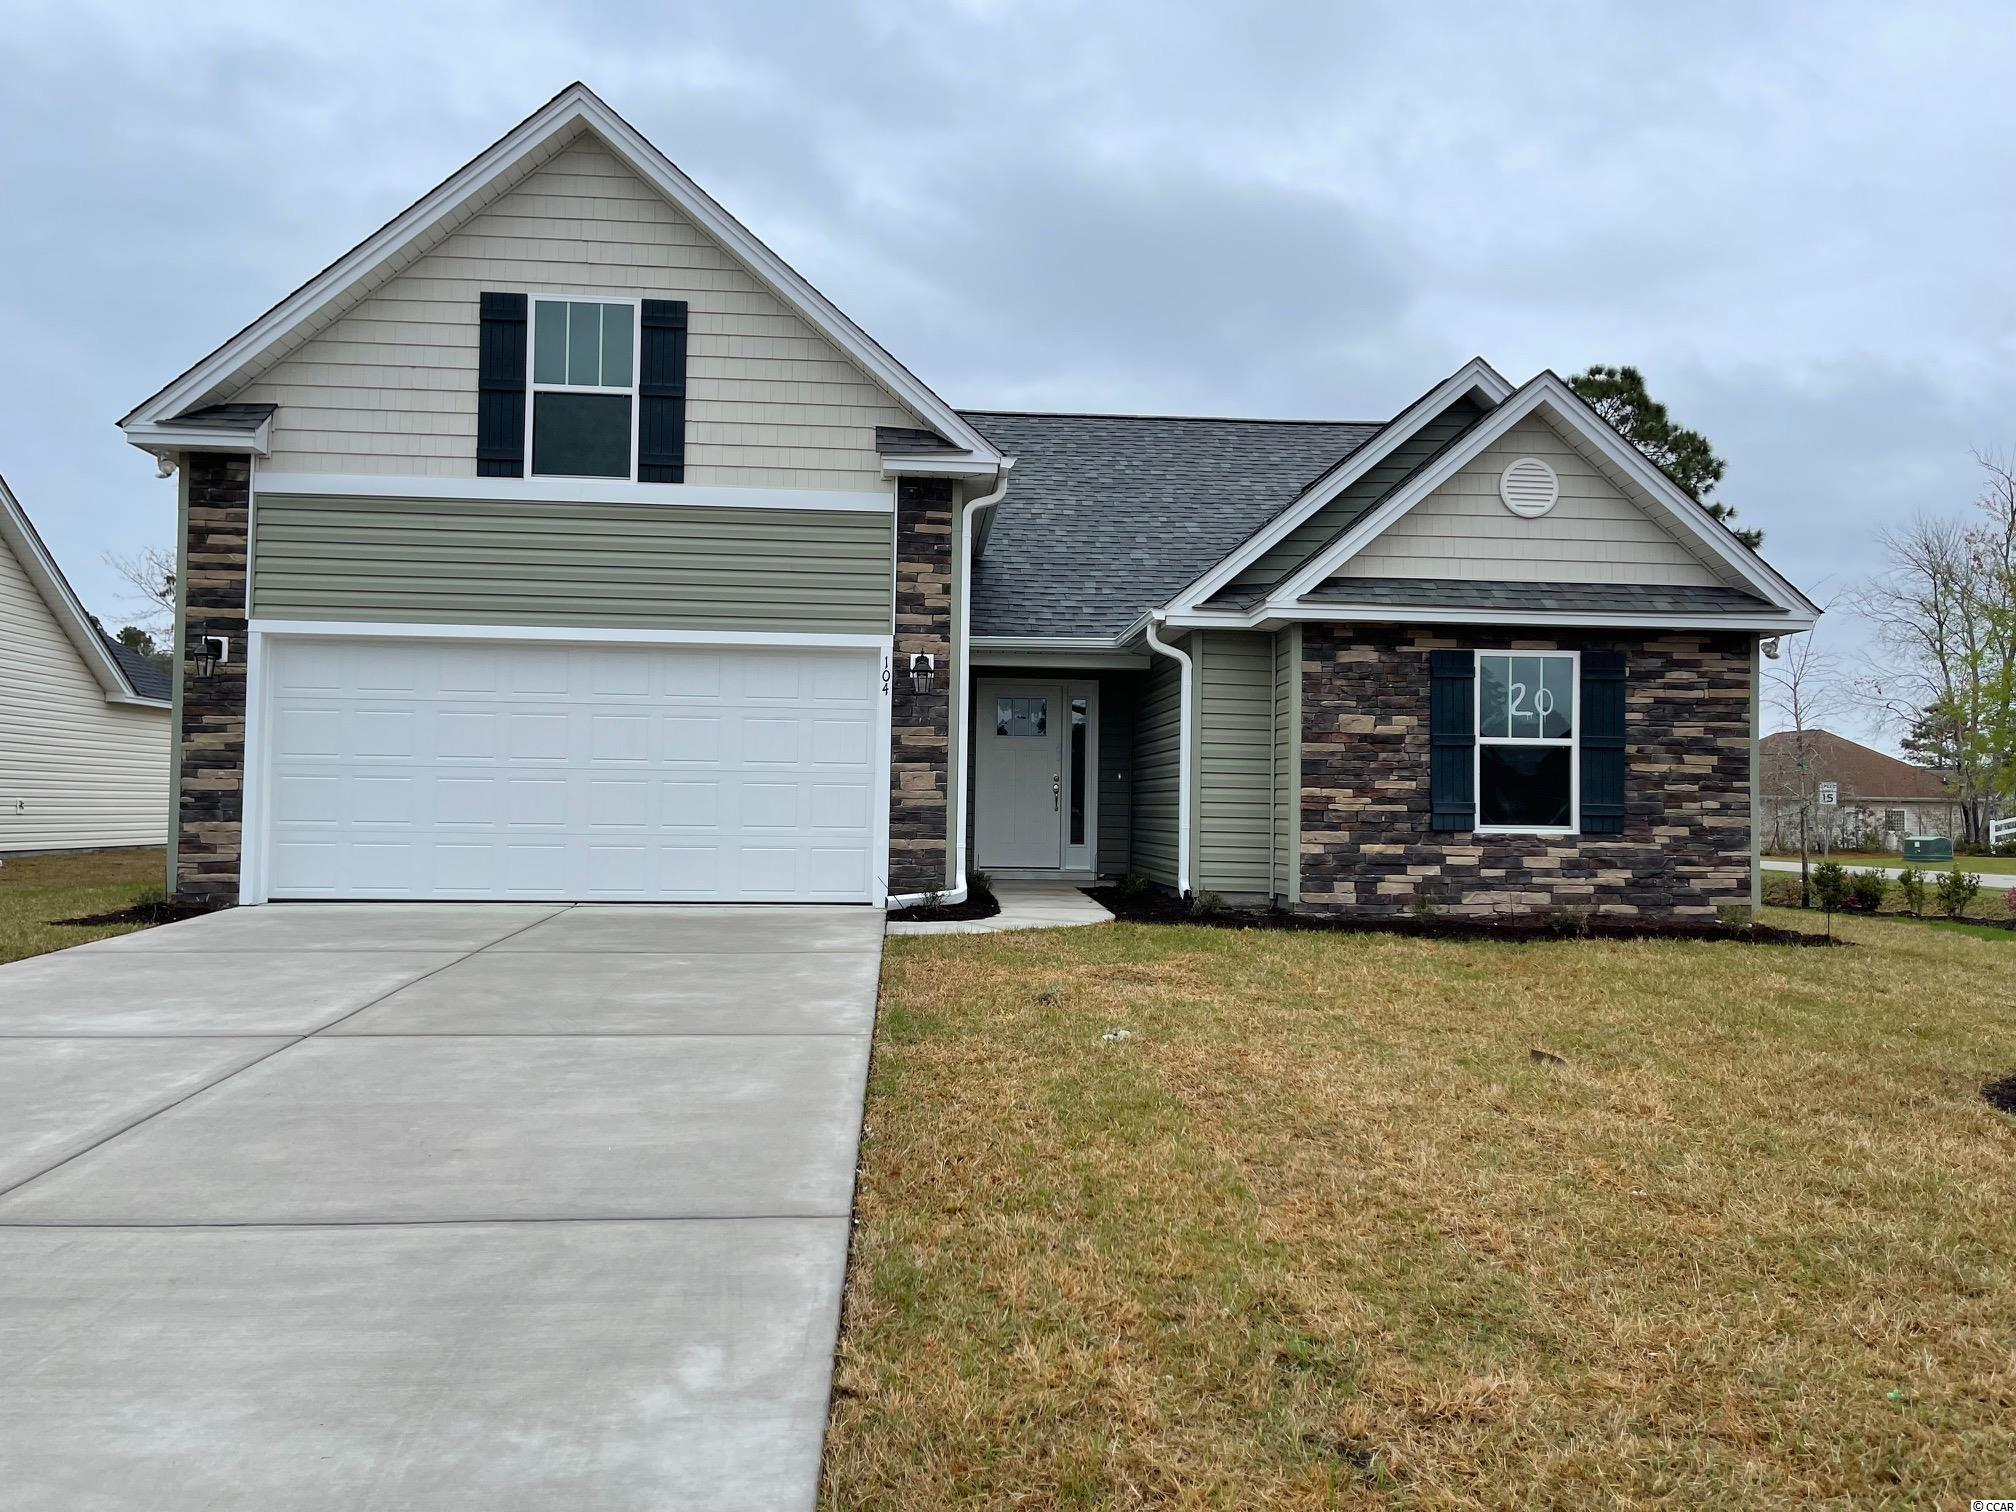 Red Hill commons is a new community located in Conway area only a few miles from the Beach and major shopping! This is the Opal floor plan with 2 ft expansion featuring 4 bedrooms, 3baths. Th house includes a finished 2 car garage with garage openers. Ceramic tile in all bathrooms and Laundry room, Granite Kitchen Countertops, with hardware on kitchen cabinets. Vaulted ceiling in Family room, every bedroom. Home also includes TAEXX pest control tubing!! Stone accents on the exterior as well. All measurements are approximate *Photos of a similar home* Some items on the photos may be an additional cost. Anticipating completion time Winter 2022*